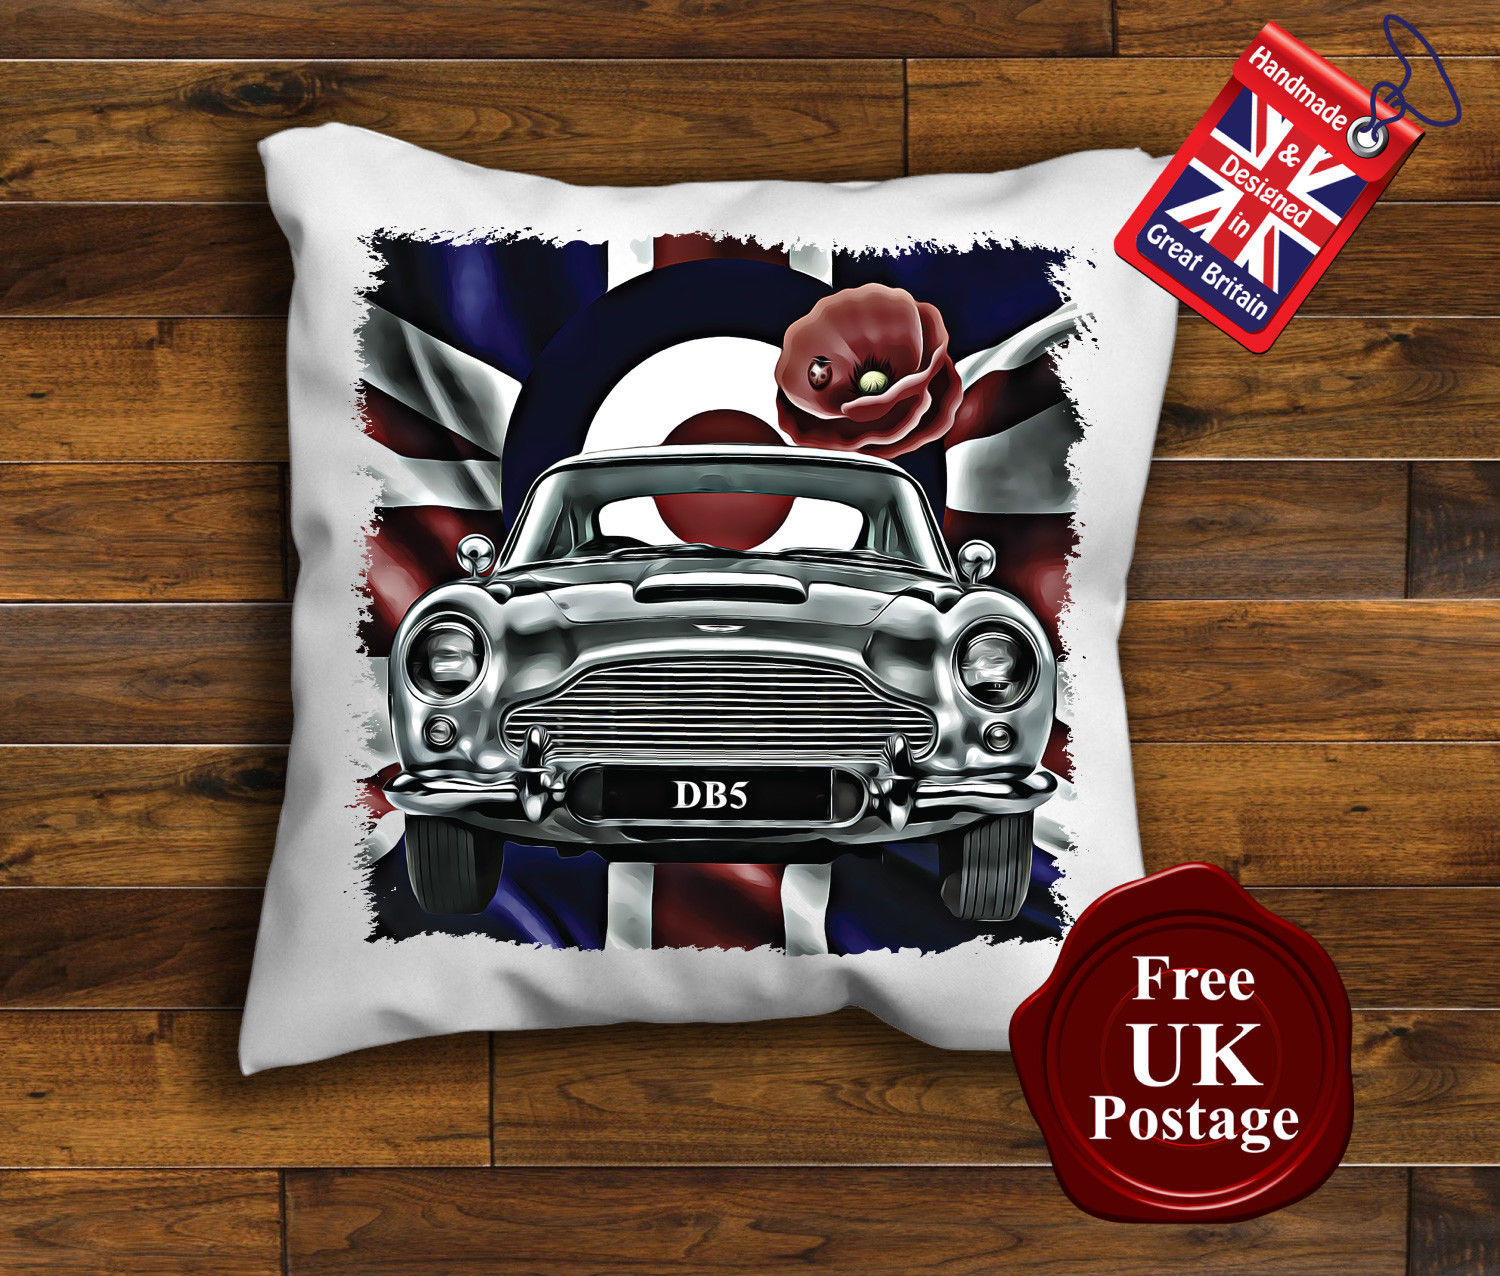 Aston Martin DB5 Cushion Cover, Aston Martin DB5, Union Jack Cushion, Mod Tar... - $9.07 - $15.56